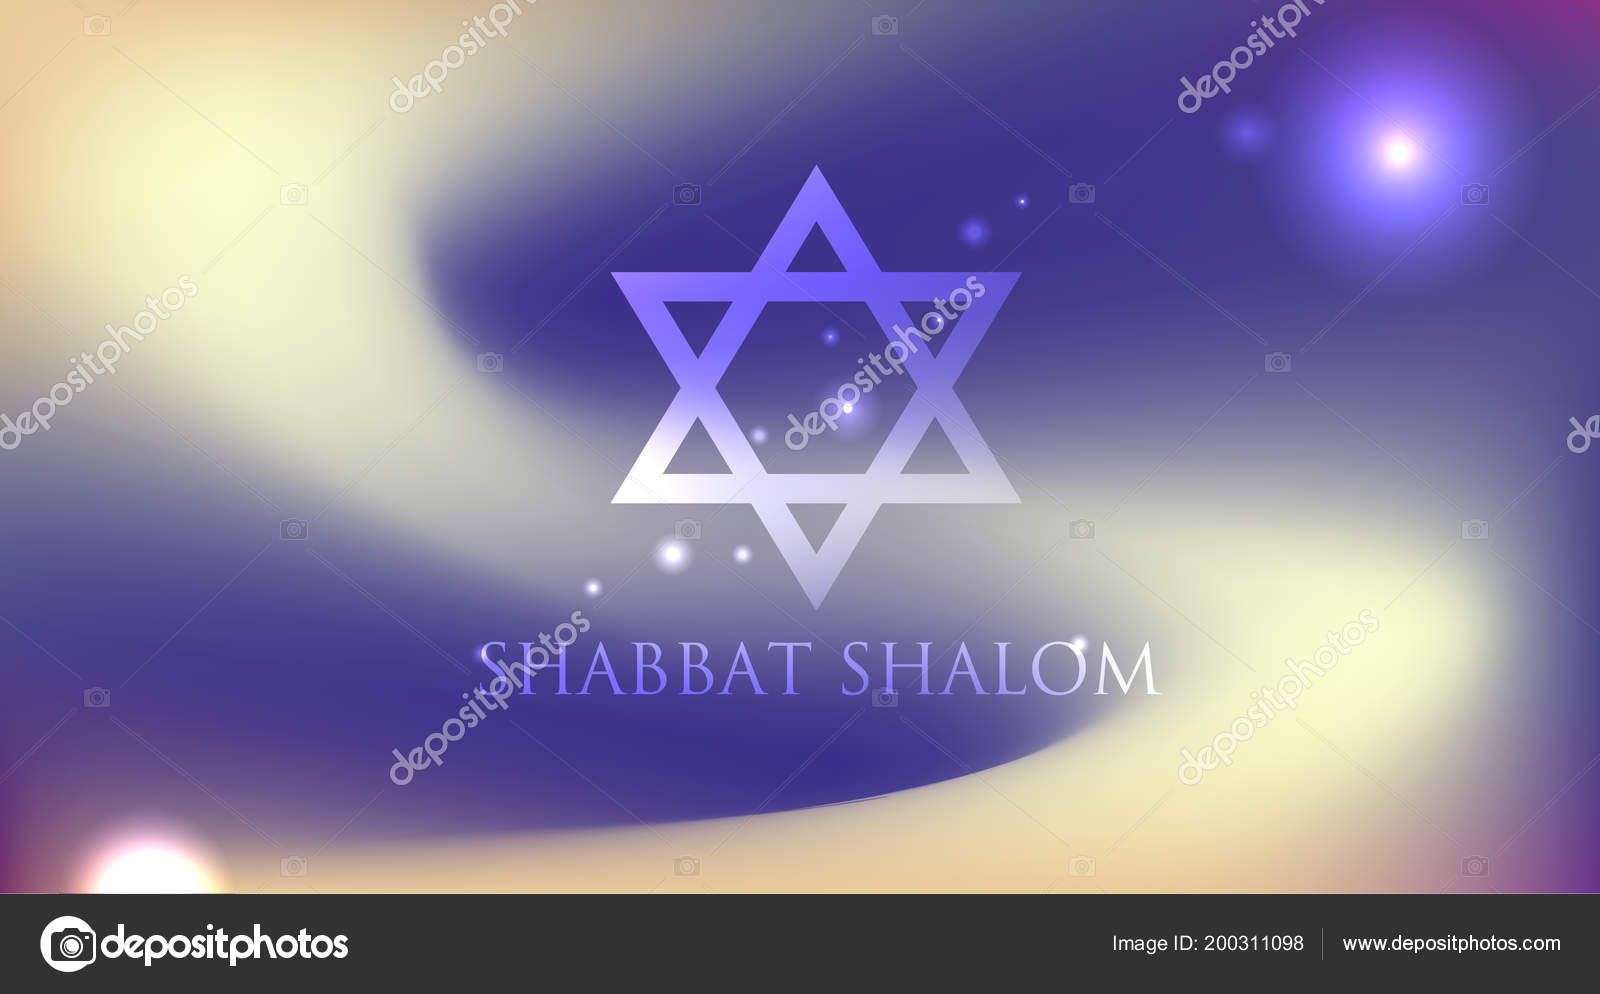 Shabbat shalom star david jewish holy greeting card hexagram shabbat shalom star david jewish holy greeting card hexagram background stock vector m4hsunfo